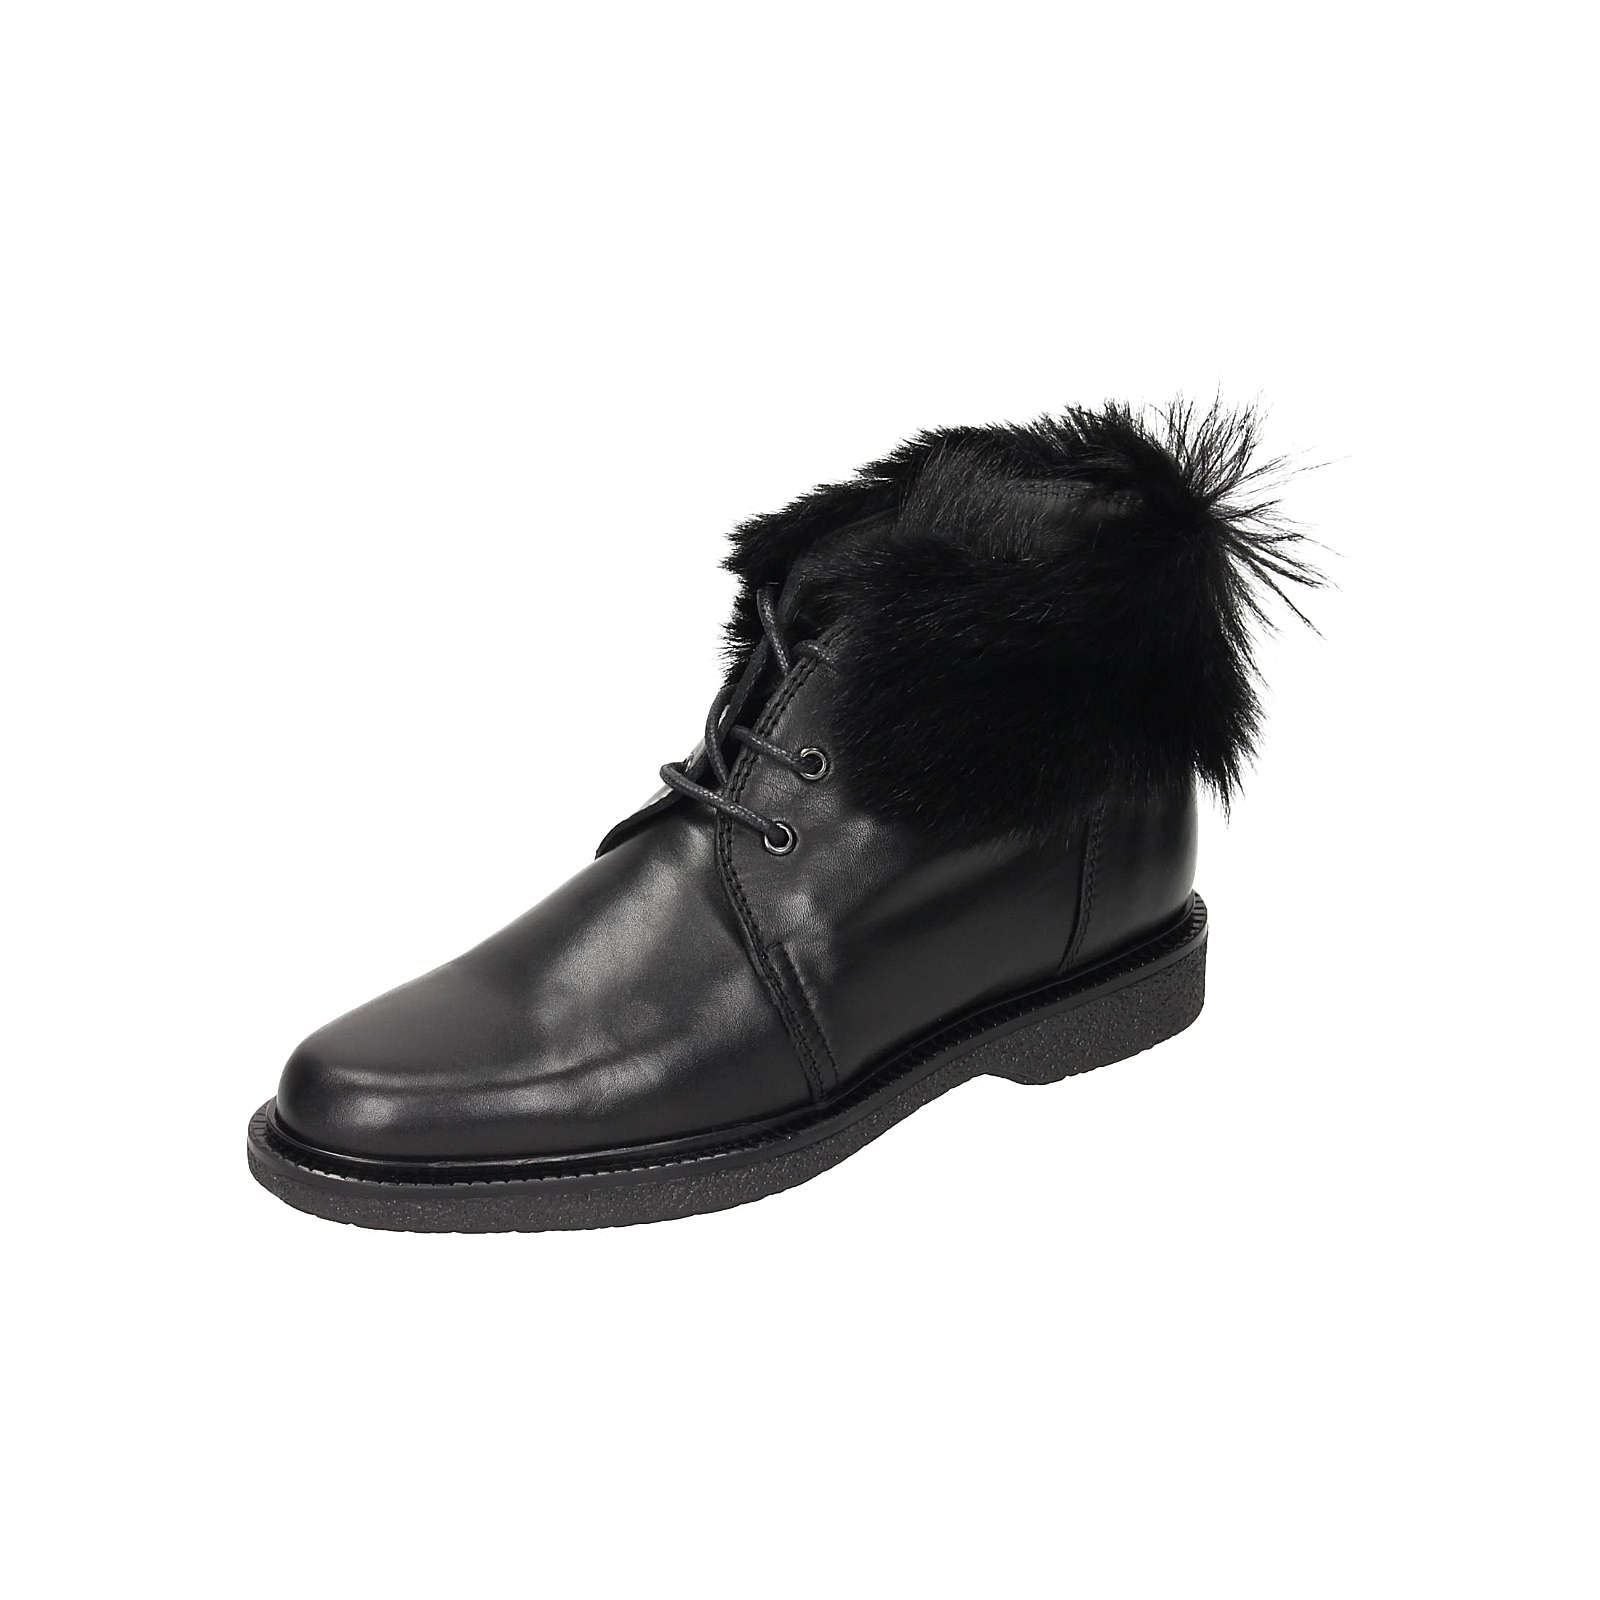 Everybody Damen Stiefel Winterstiefel schwarz Damen Gr. 40